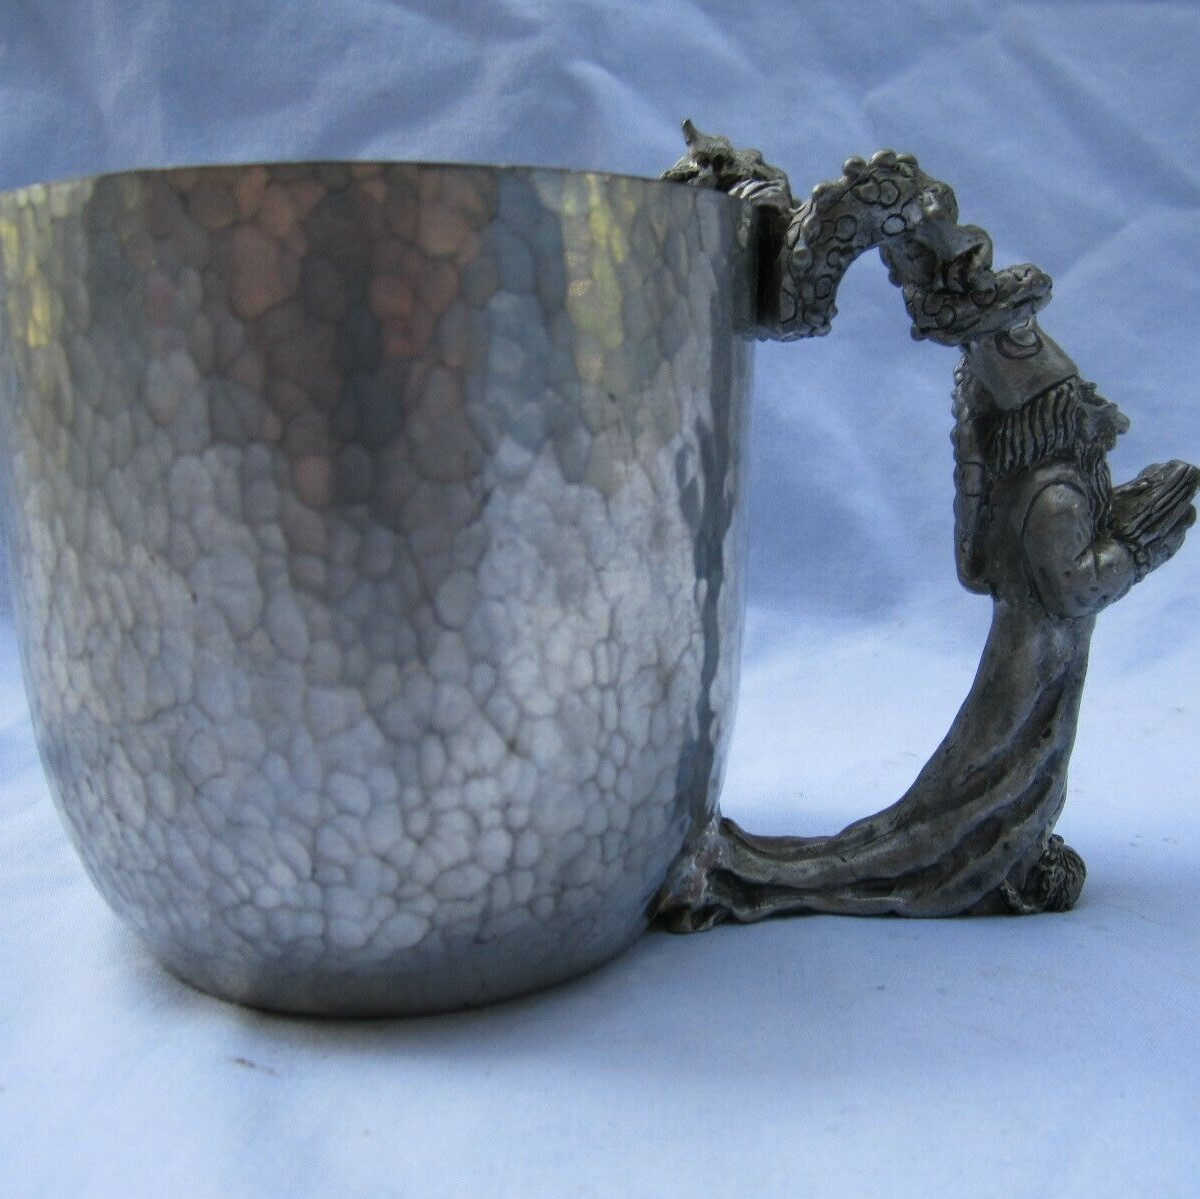 Ballena Bay Pewter cup Merchant Vendor Shopping Marketplace